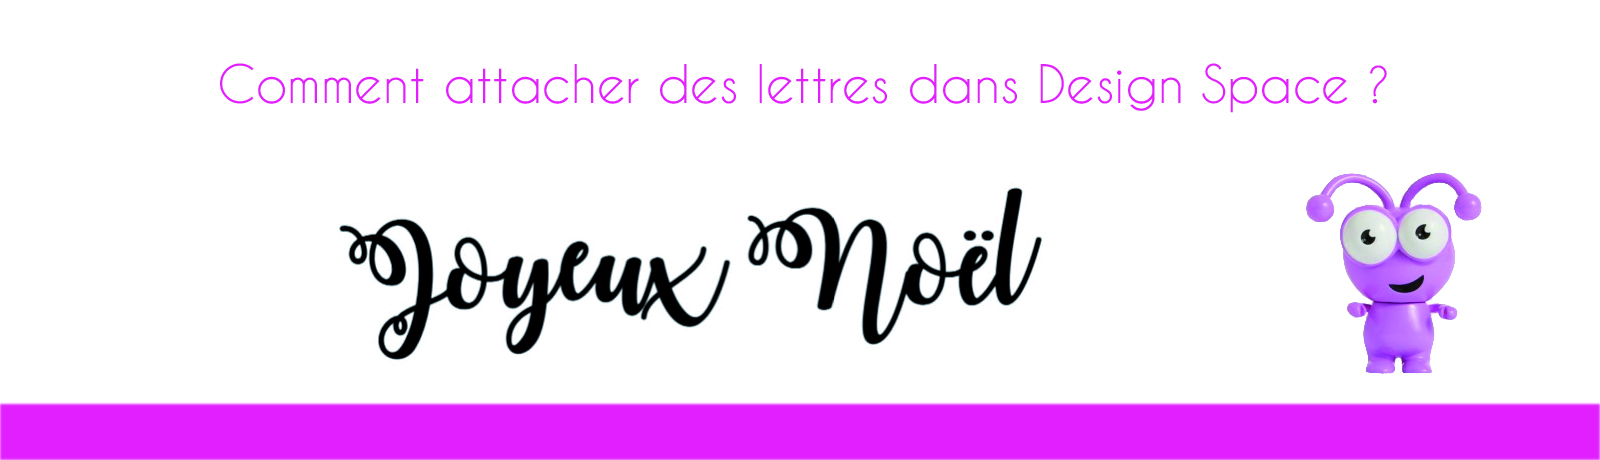 Attacher des lettres dans Design Space